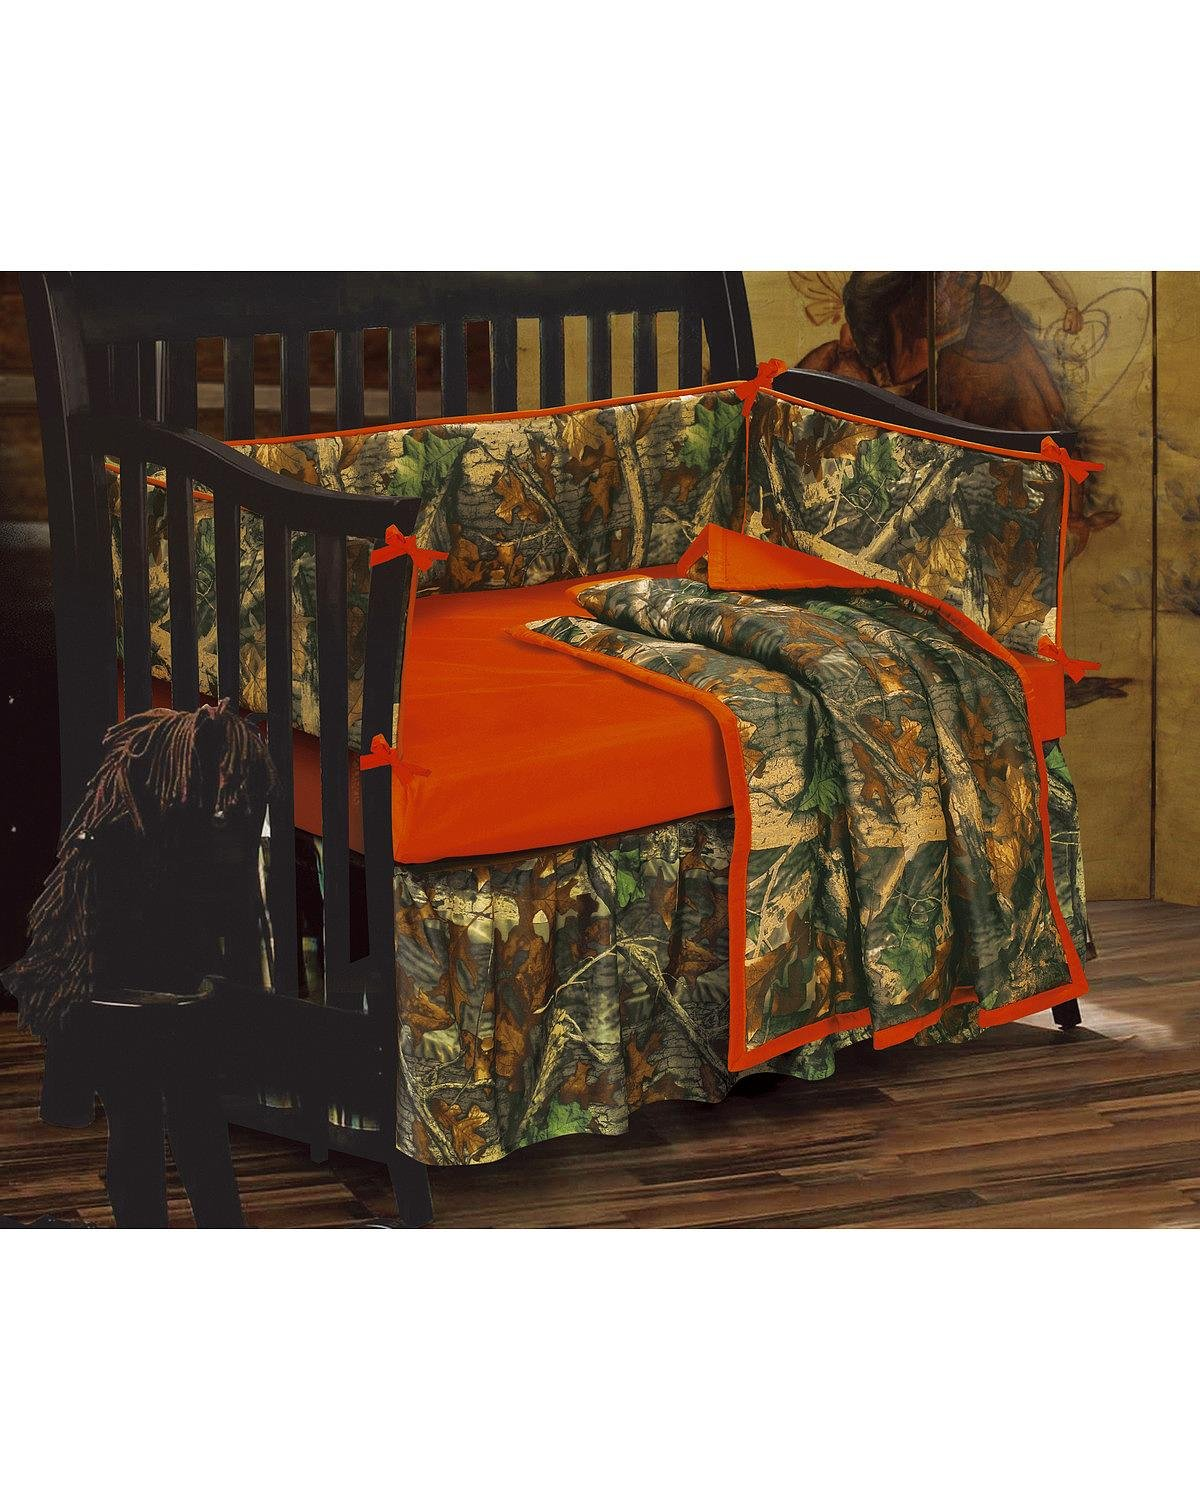 1 Notebook 565108 B00eh3sjae Hiend Accents Oak Camo Crib  : 81QuEo5ZYBLSL1500 from www.elivingroomfurniture.com size 1200 x 1500 jpeg 295kB